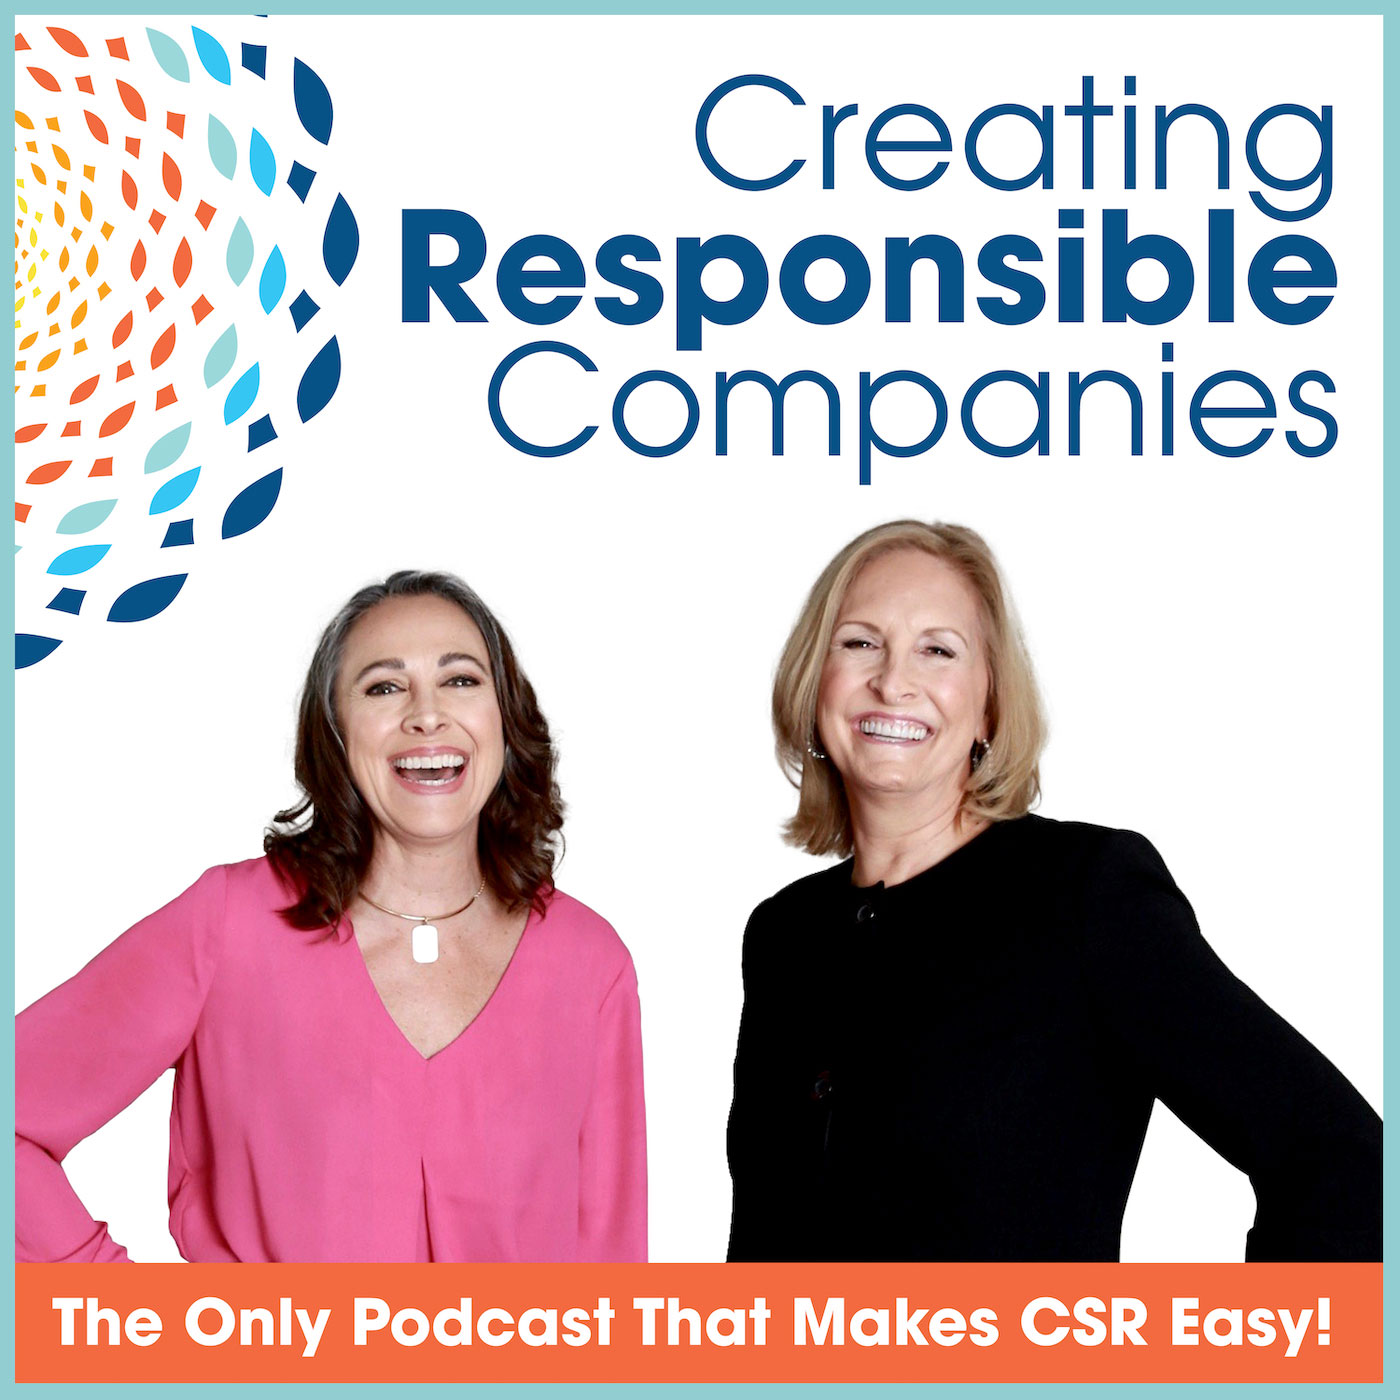 Artwork for podcast Creating Responsible Companies Podcast